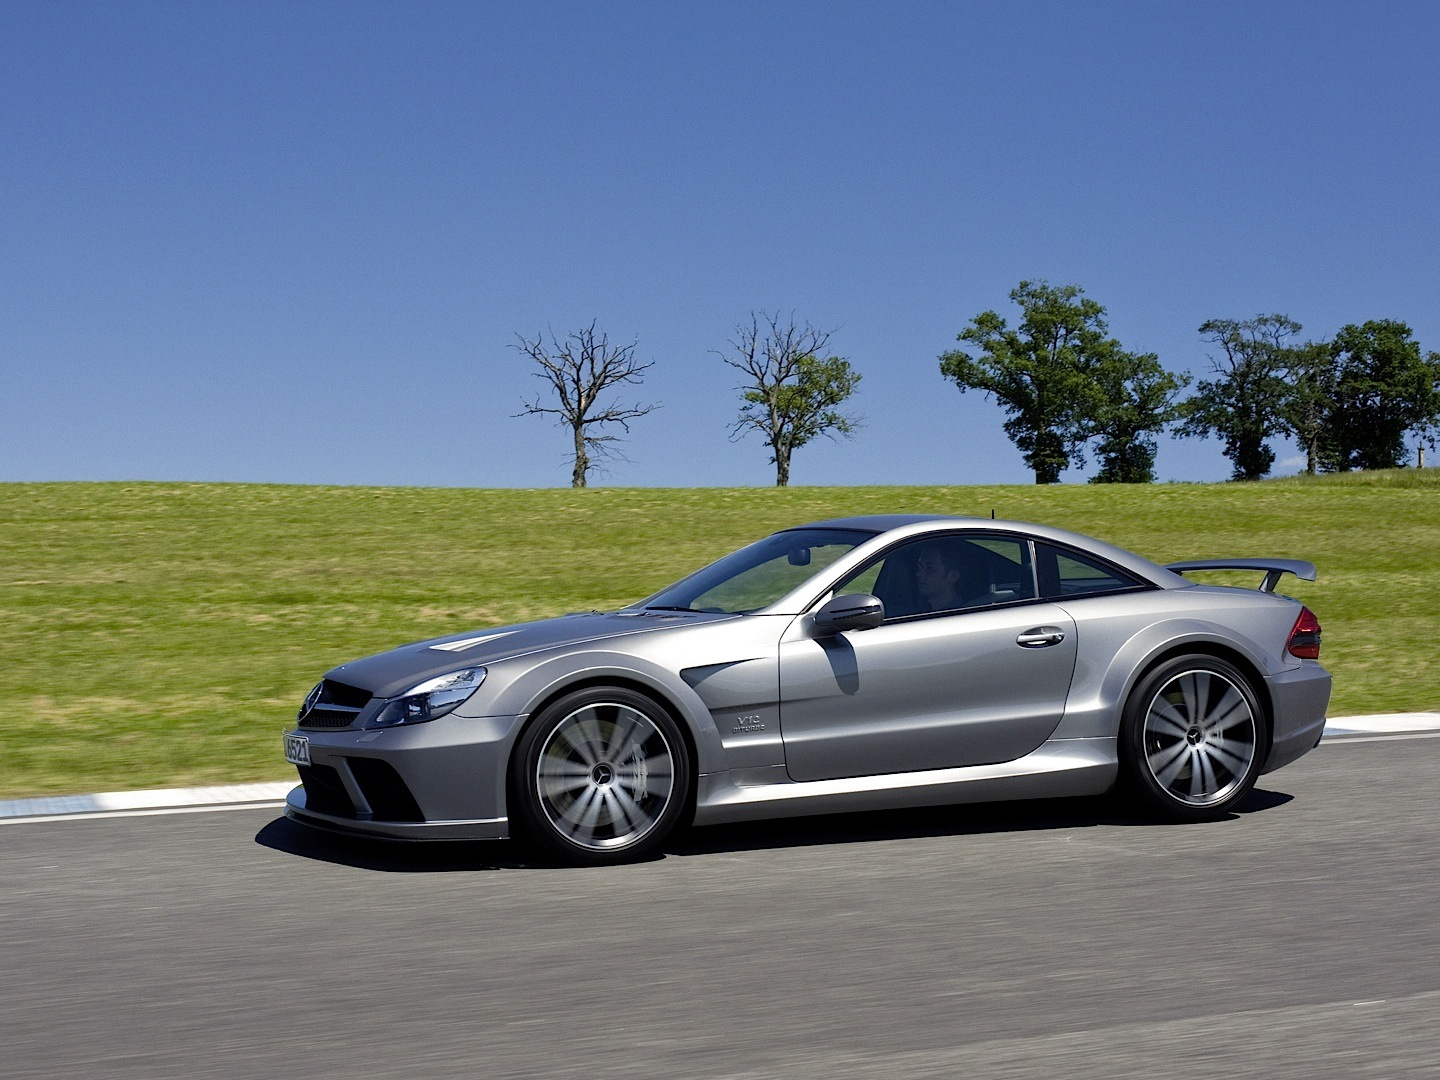 Stock Sl 65 Amg Black Series Vs Tuned Bmw M6 F12 Vs Tuned